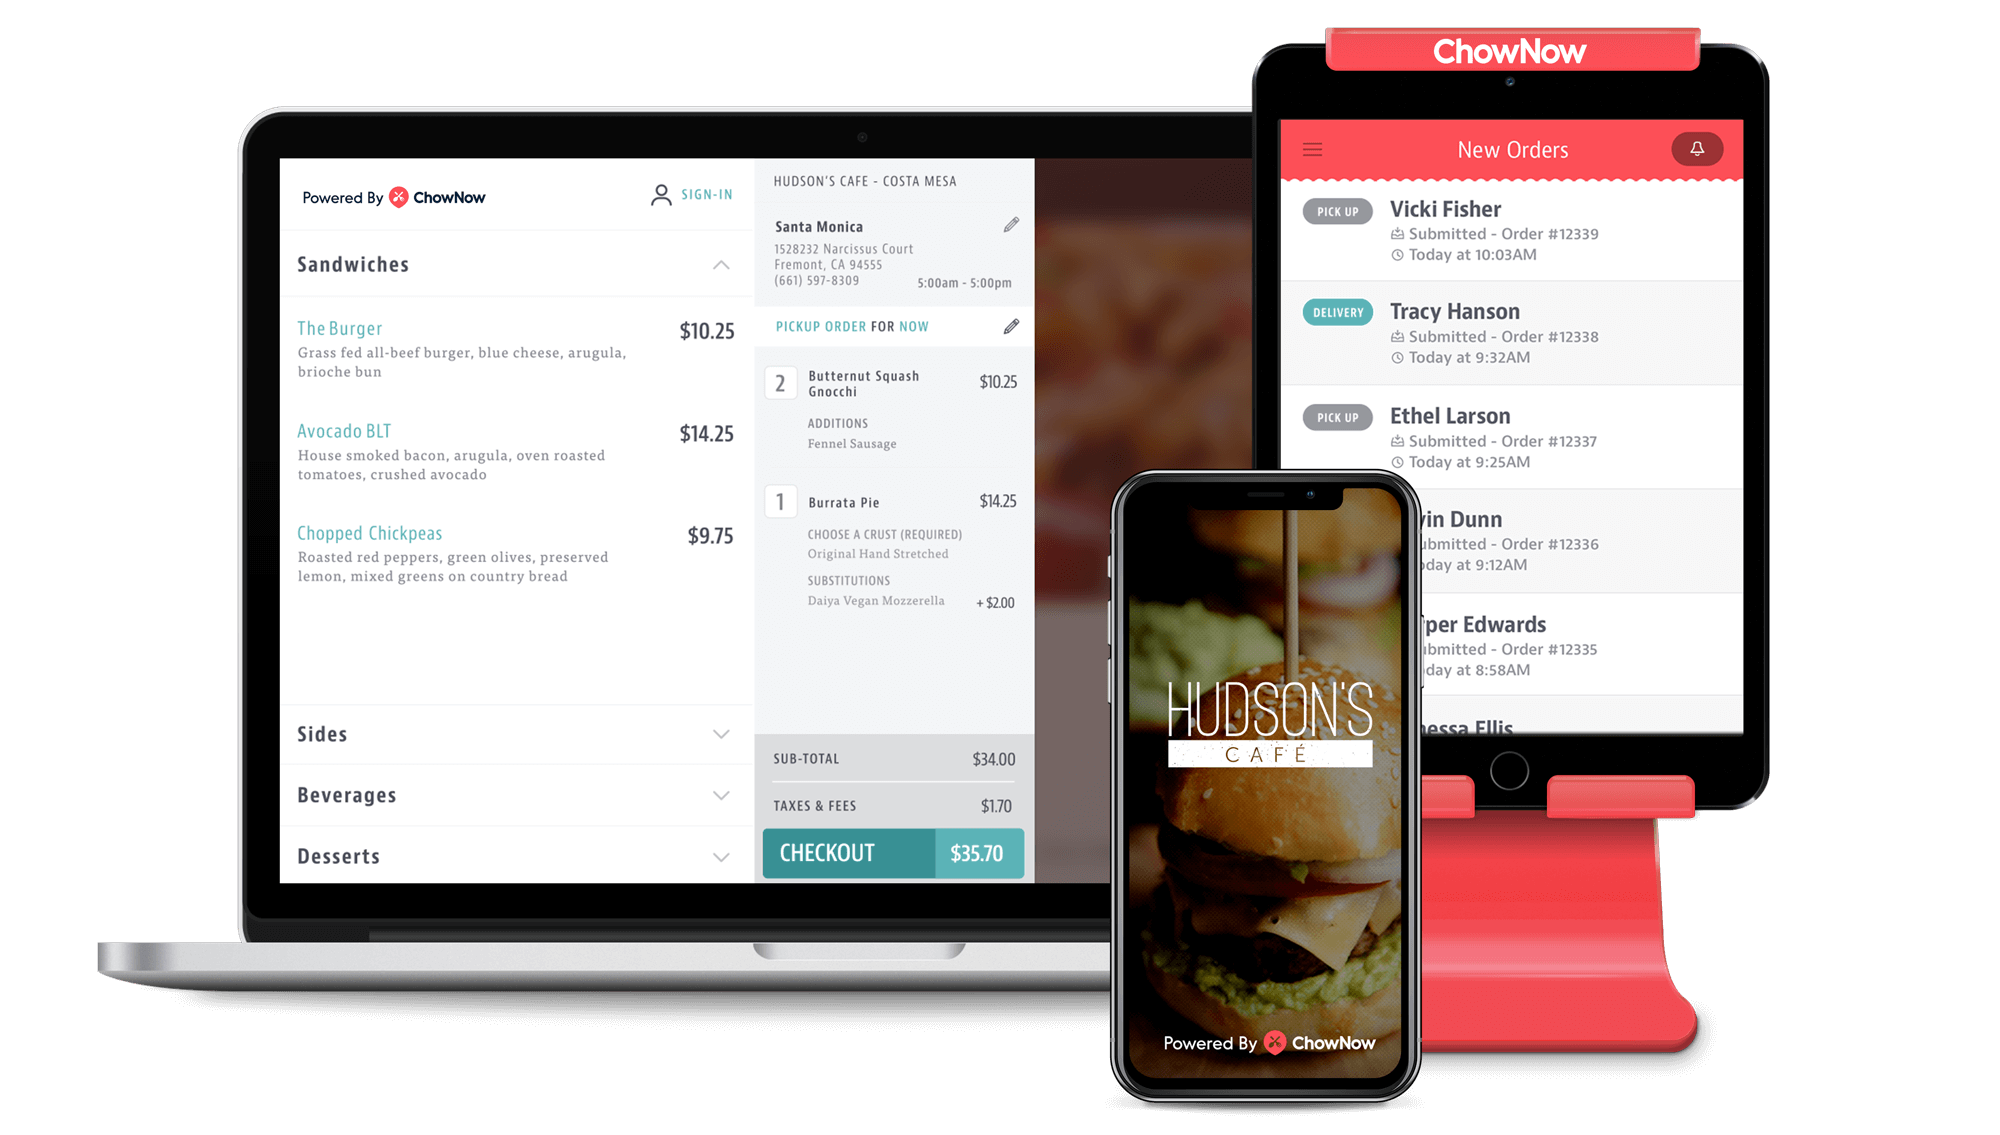 ChowNow apps on laptop, tablet and mobile phone.